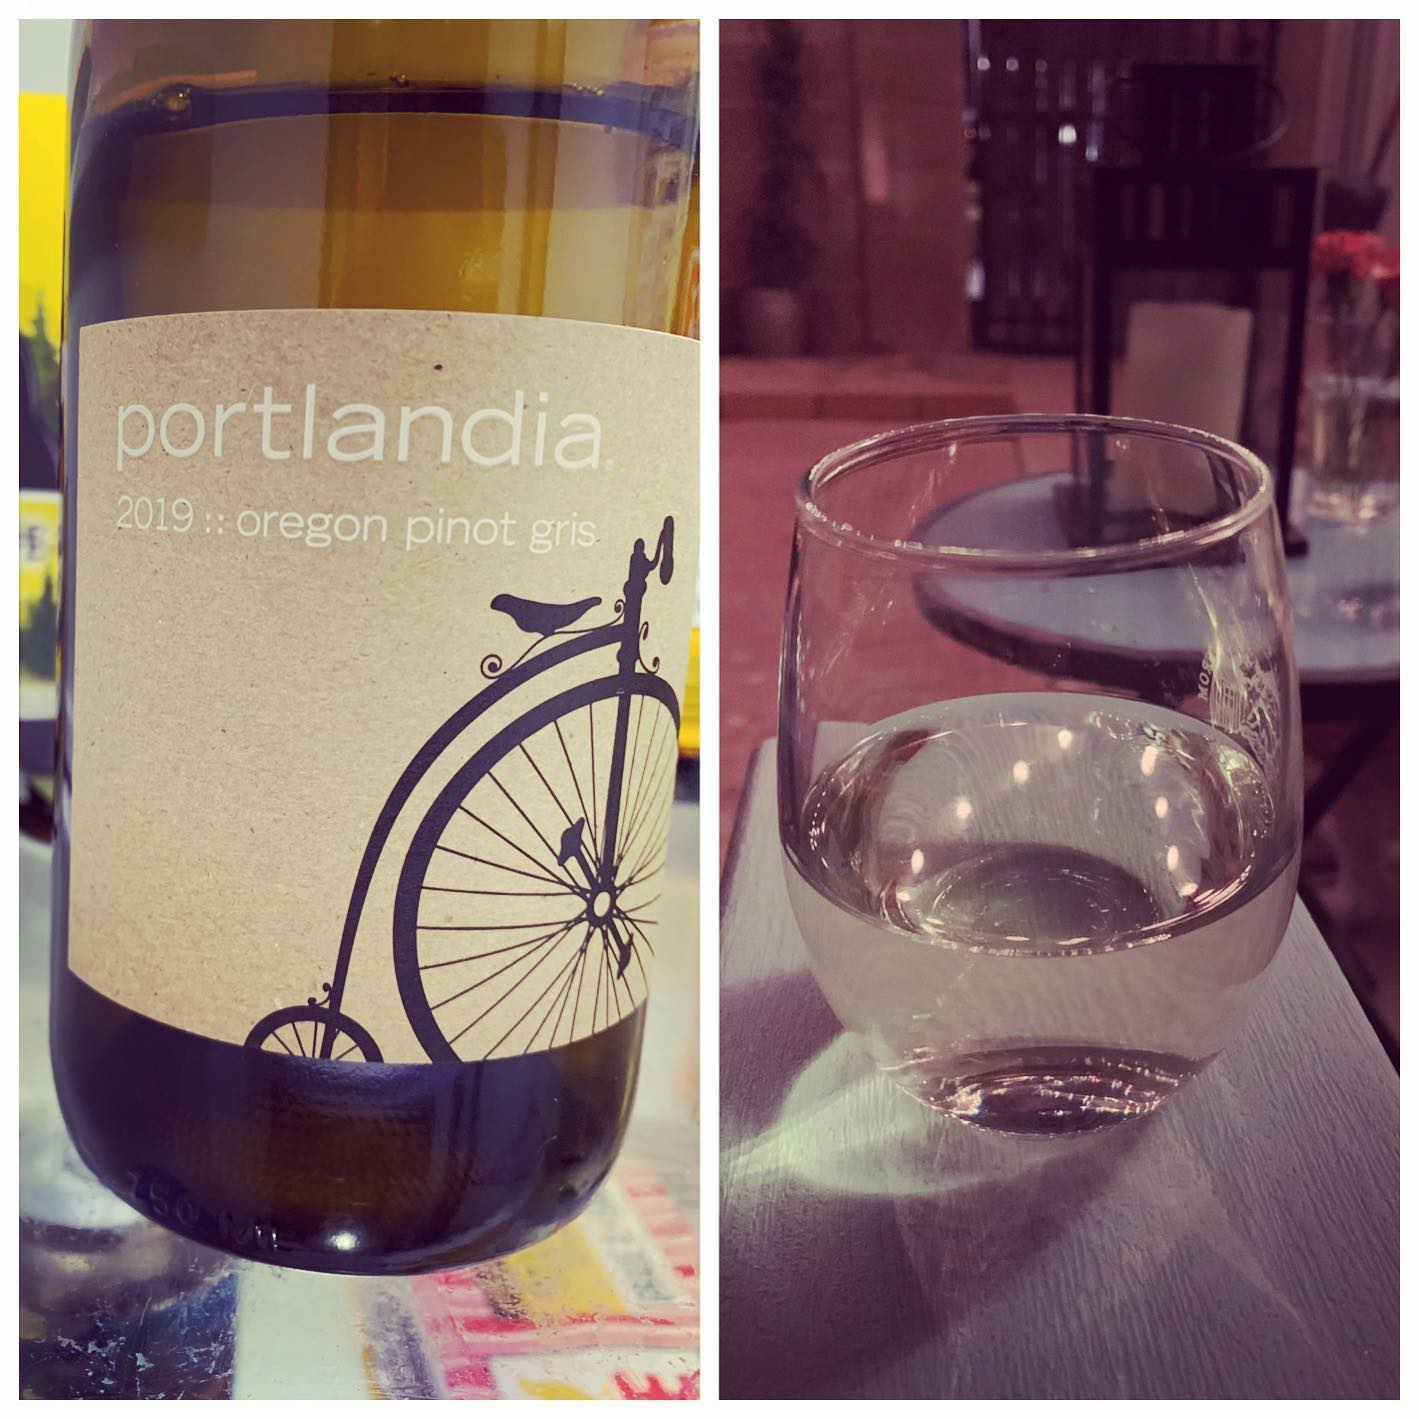 Portlandia Pinot Gris (@portlandiapinot) is the first wine of #winesgiving. Predates / unrelated to the show.